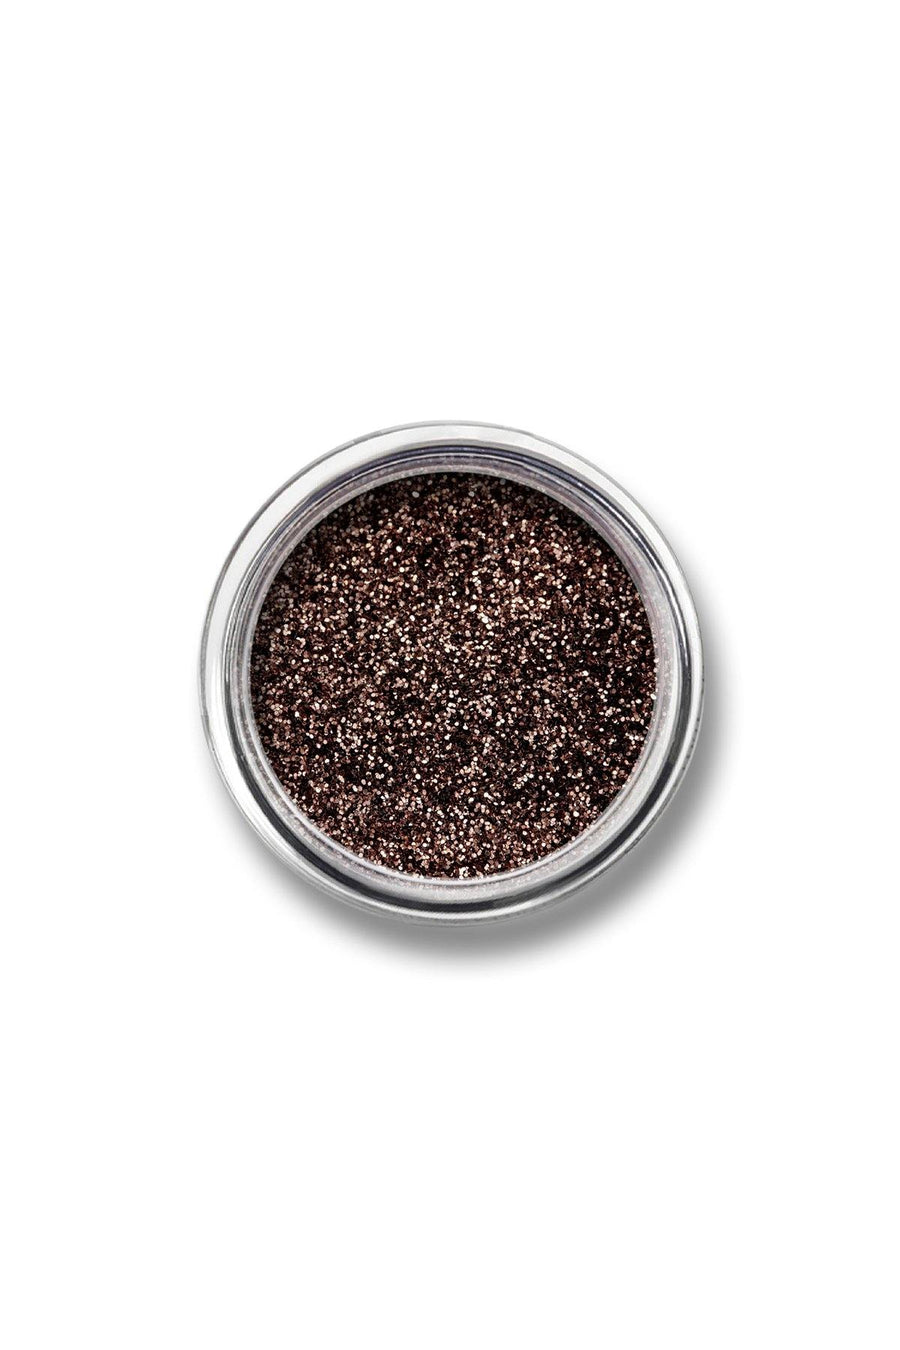 Glitter Powder #17 - Deep Bronze